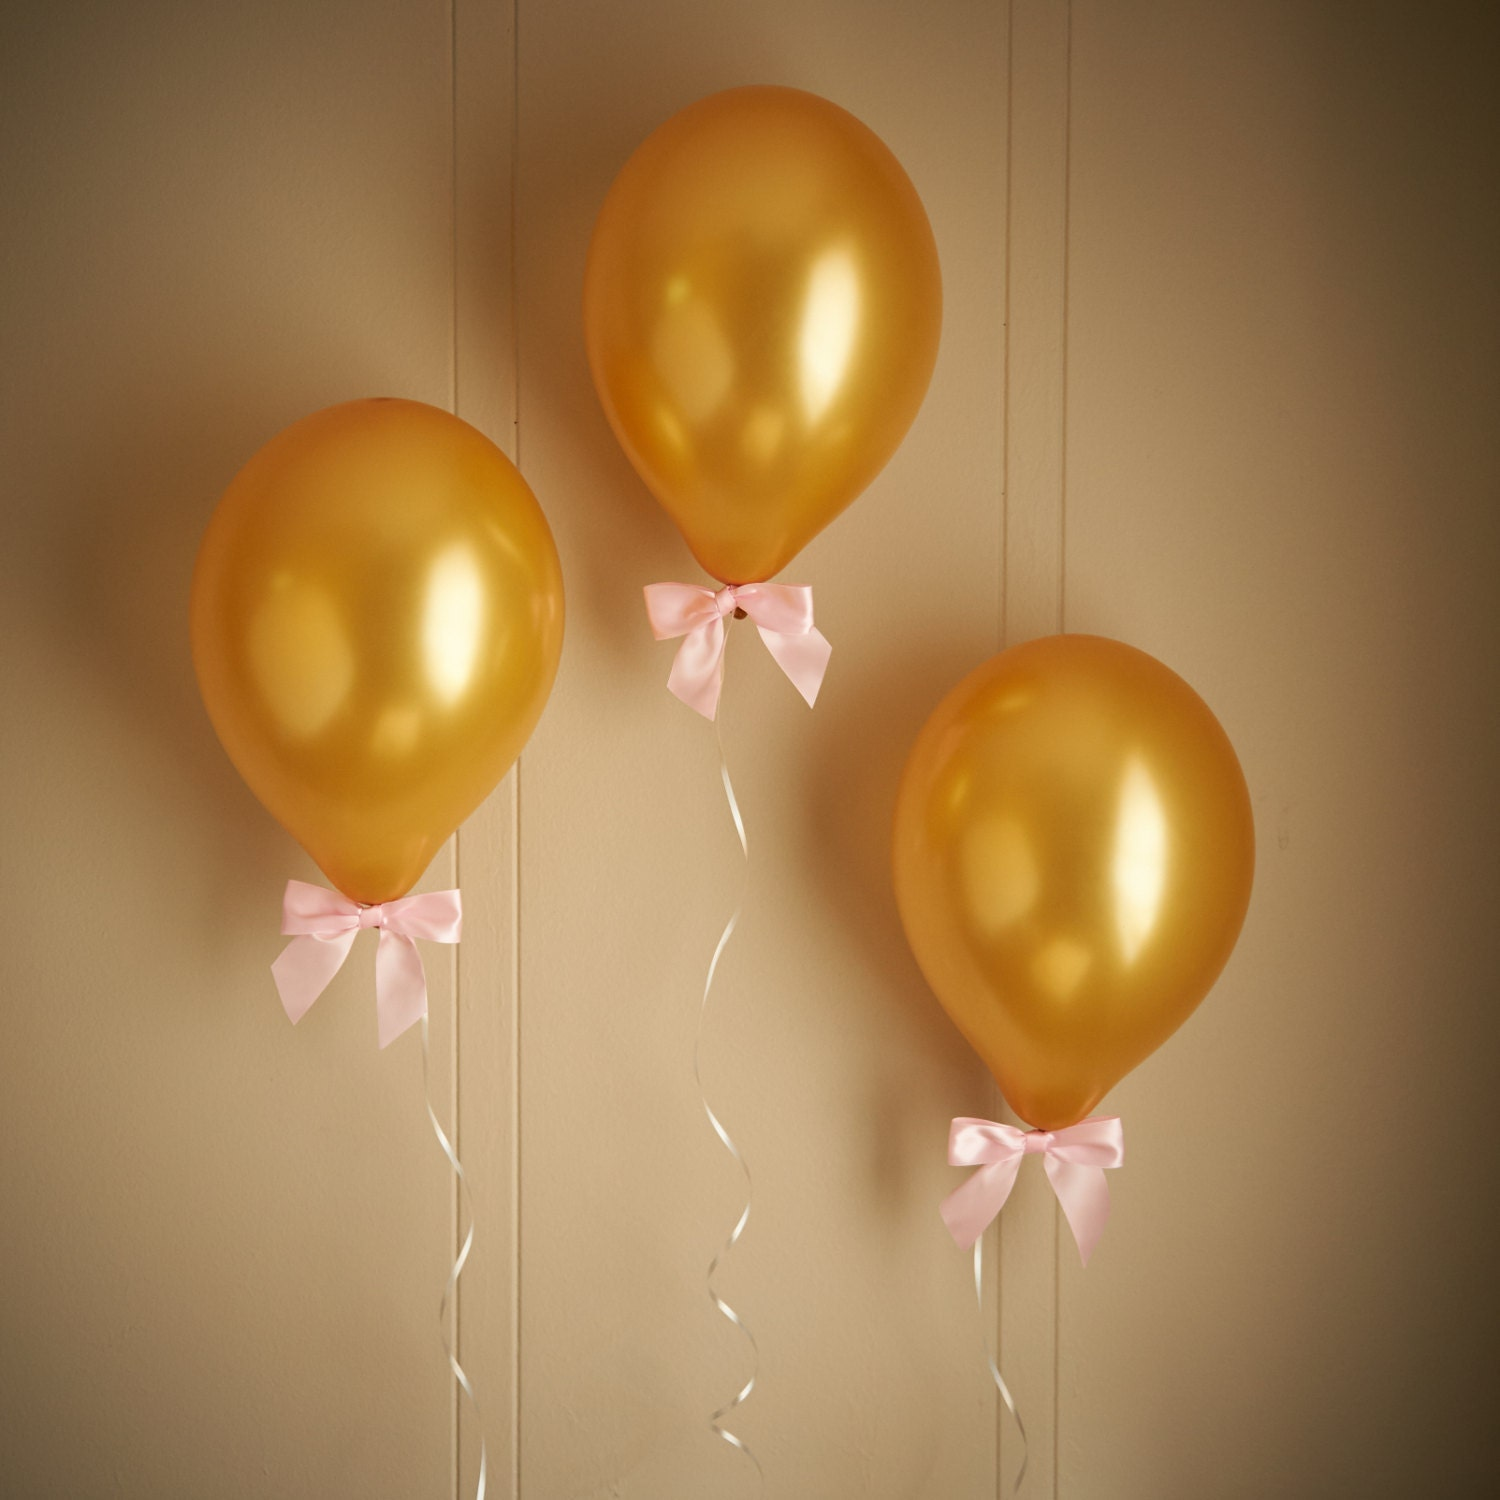 Gold Birthday Decorations Pink And Gold Birthday Party Decorations Handcrafted In 2 5